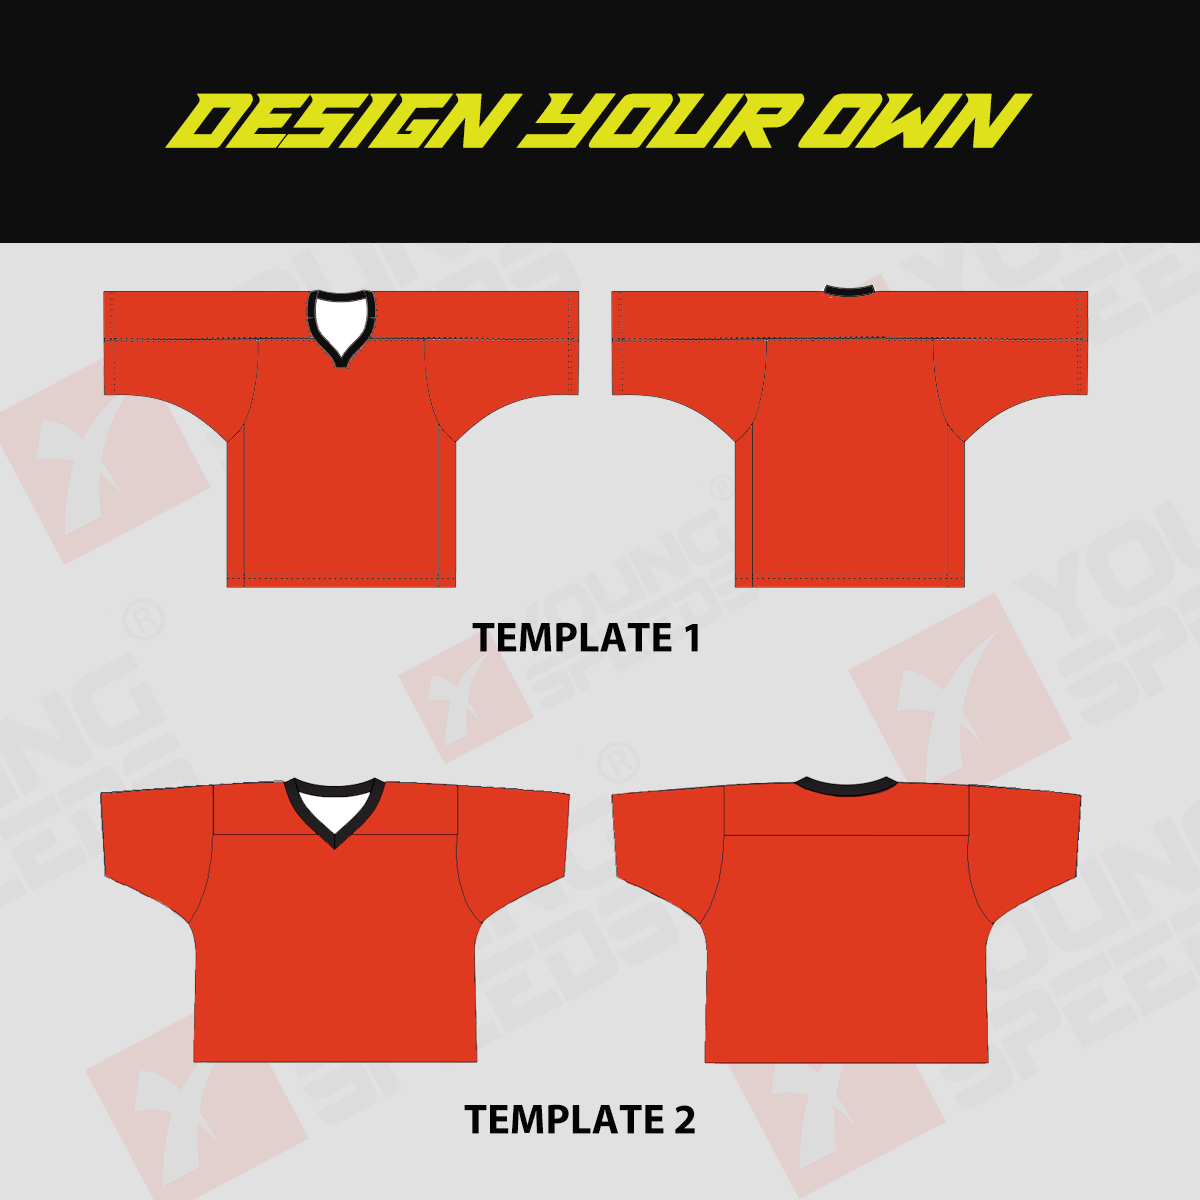 Sublimated Custom Lacrosse Jersey - DESIGN YOUR OWN - YoungSpeeds